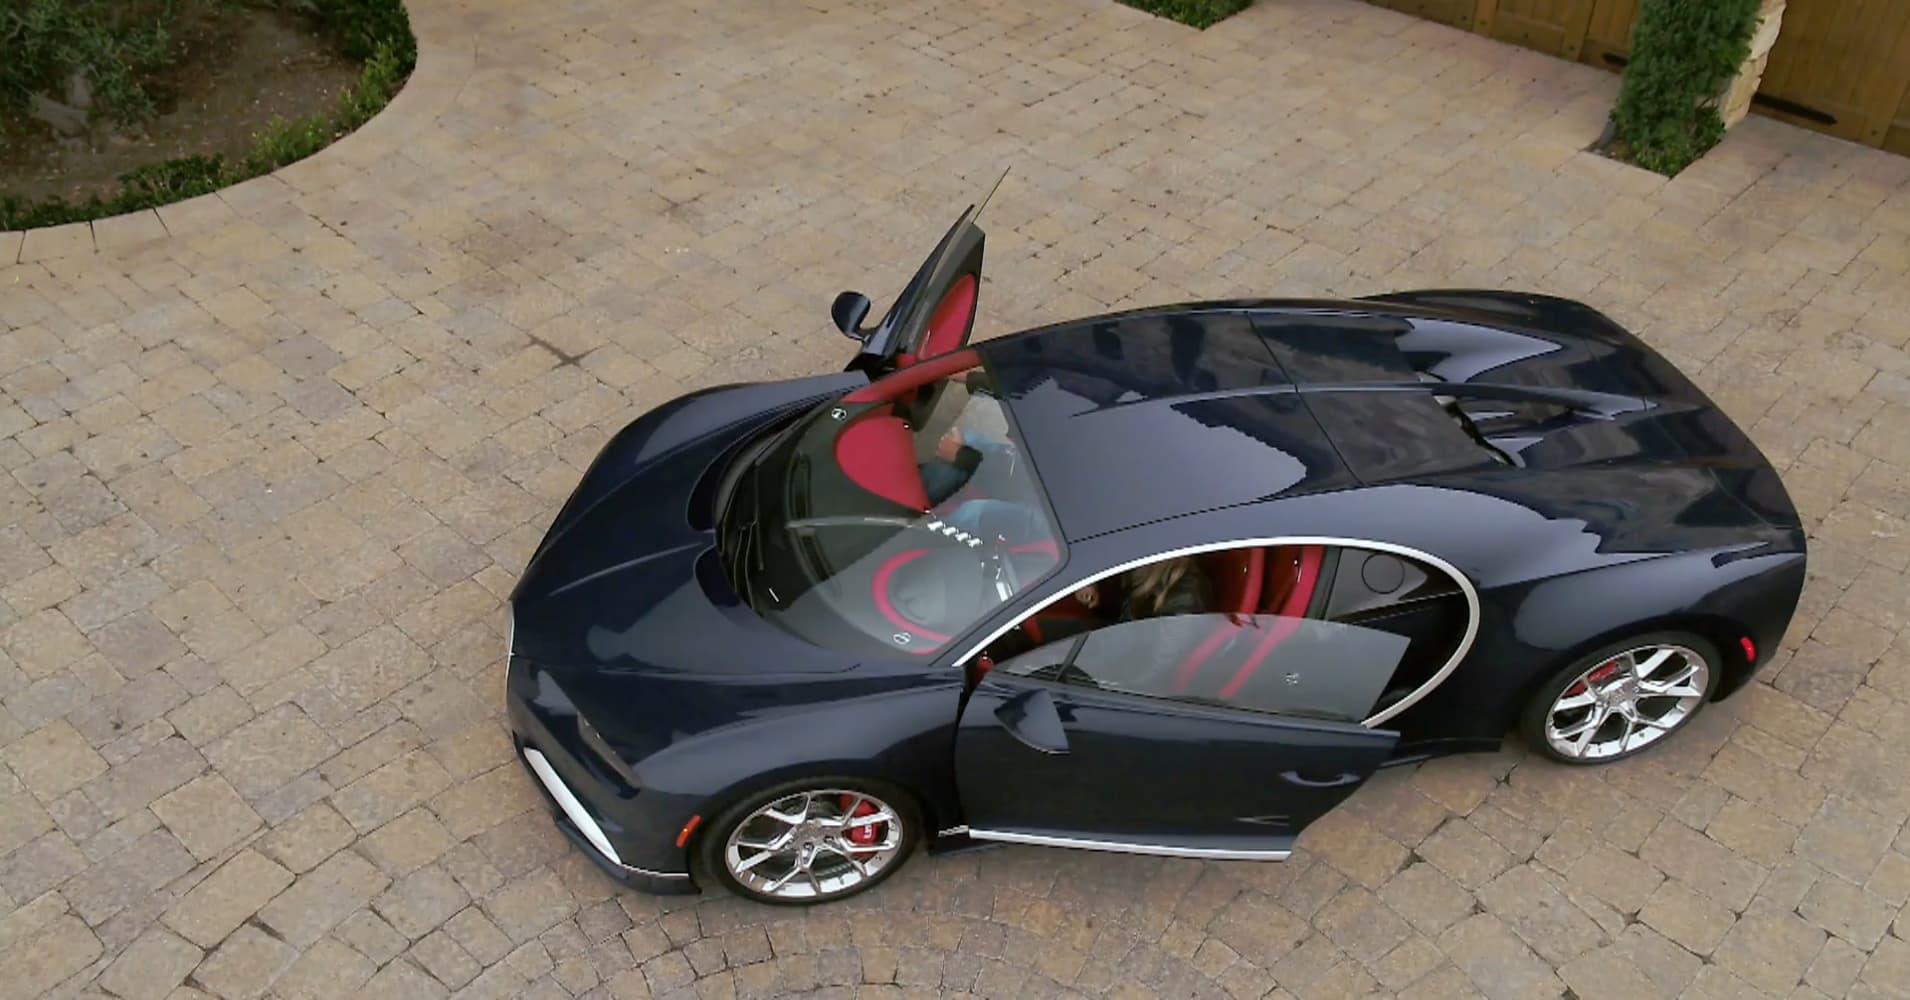 The fastest car in the world is the $3 million Bugatti Chiron